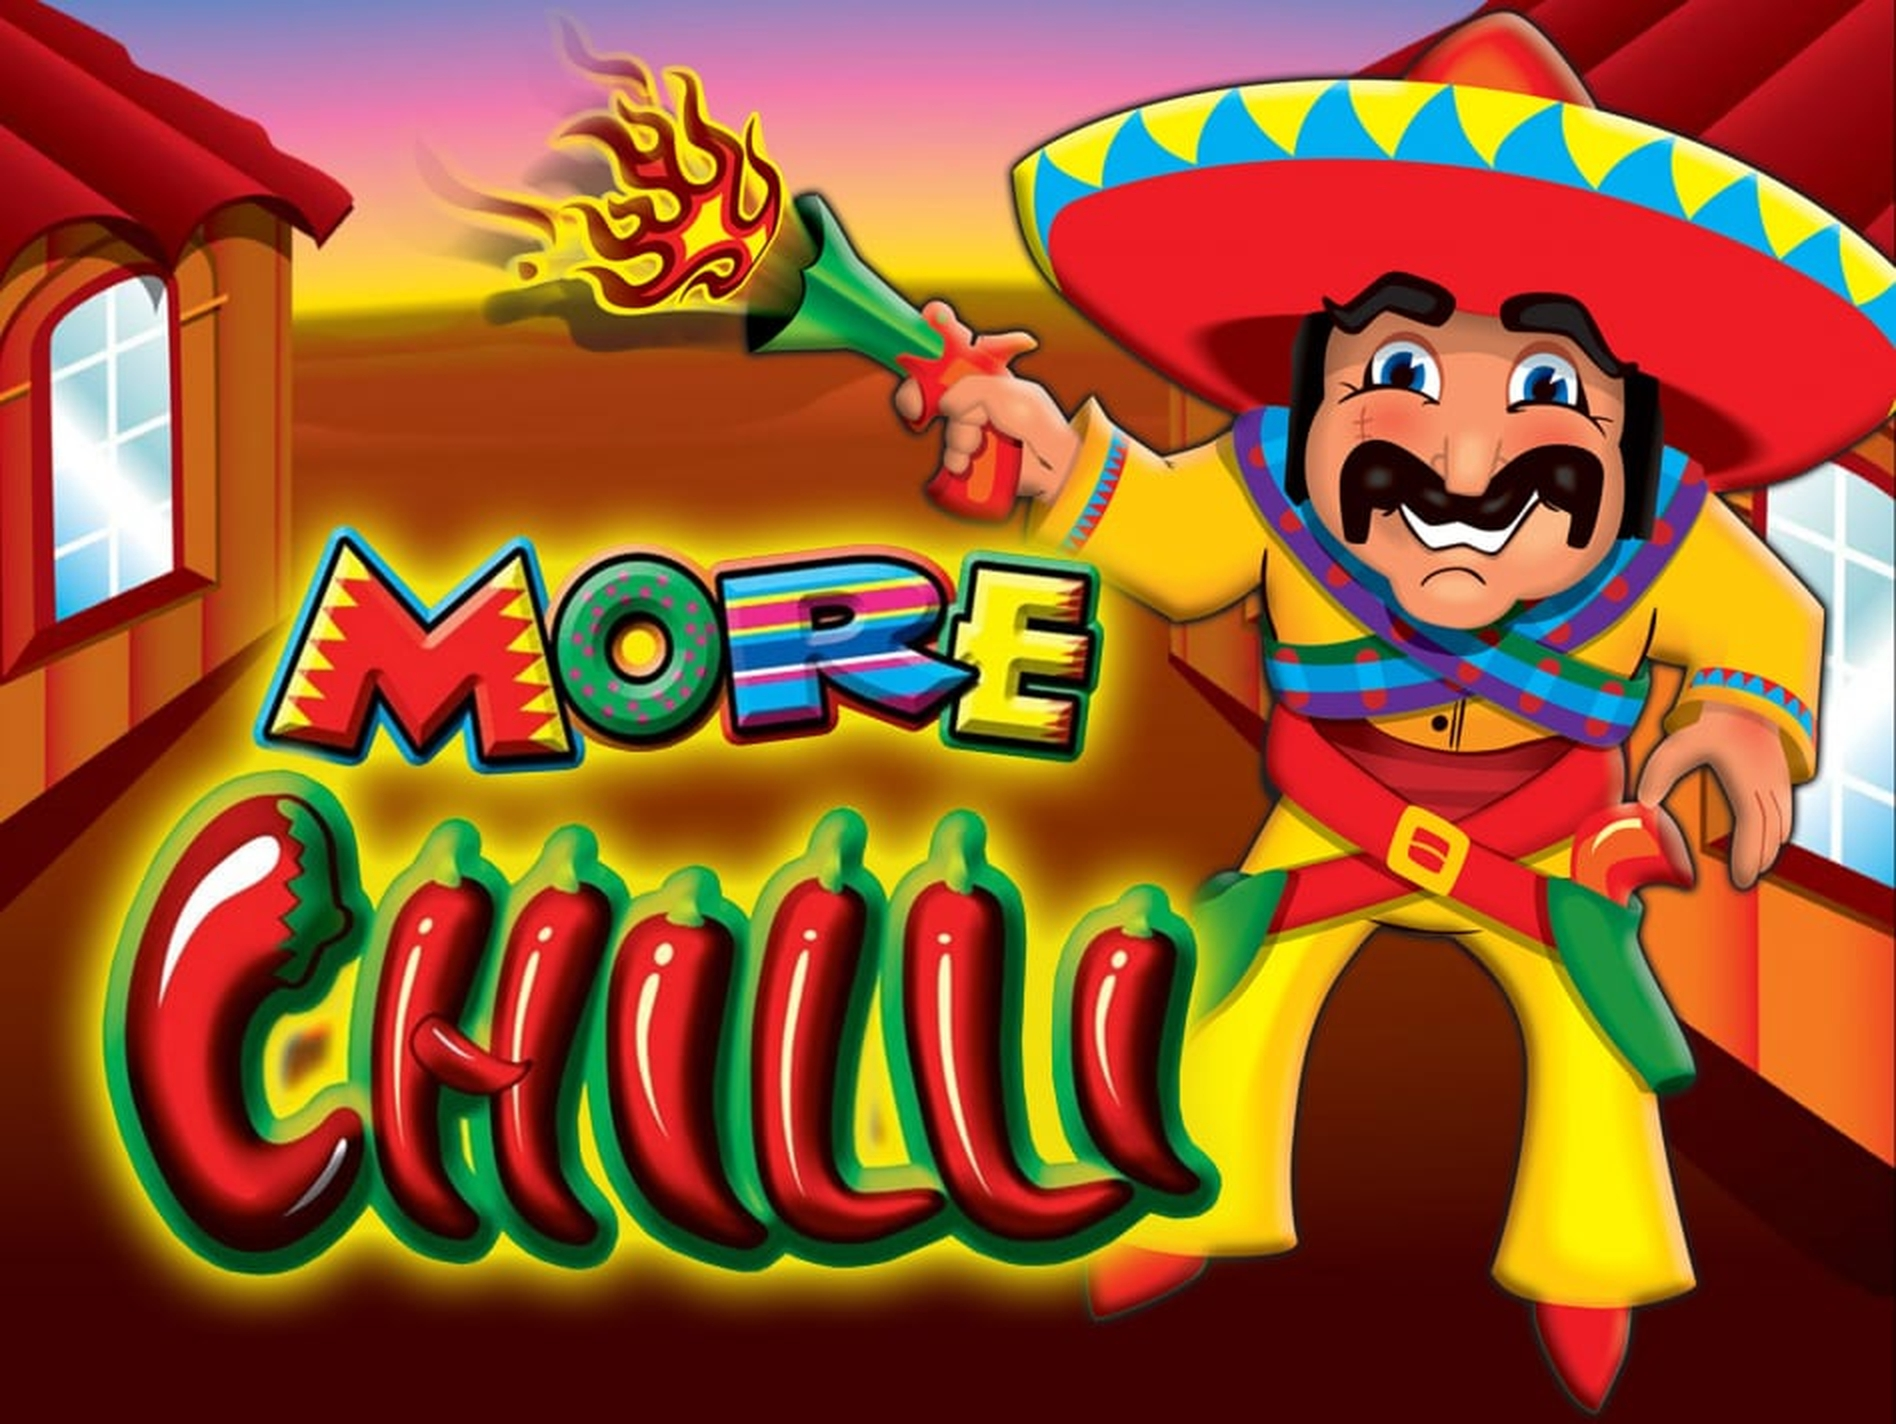 More Chilli Online Slot Demo Game by Aristocrat